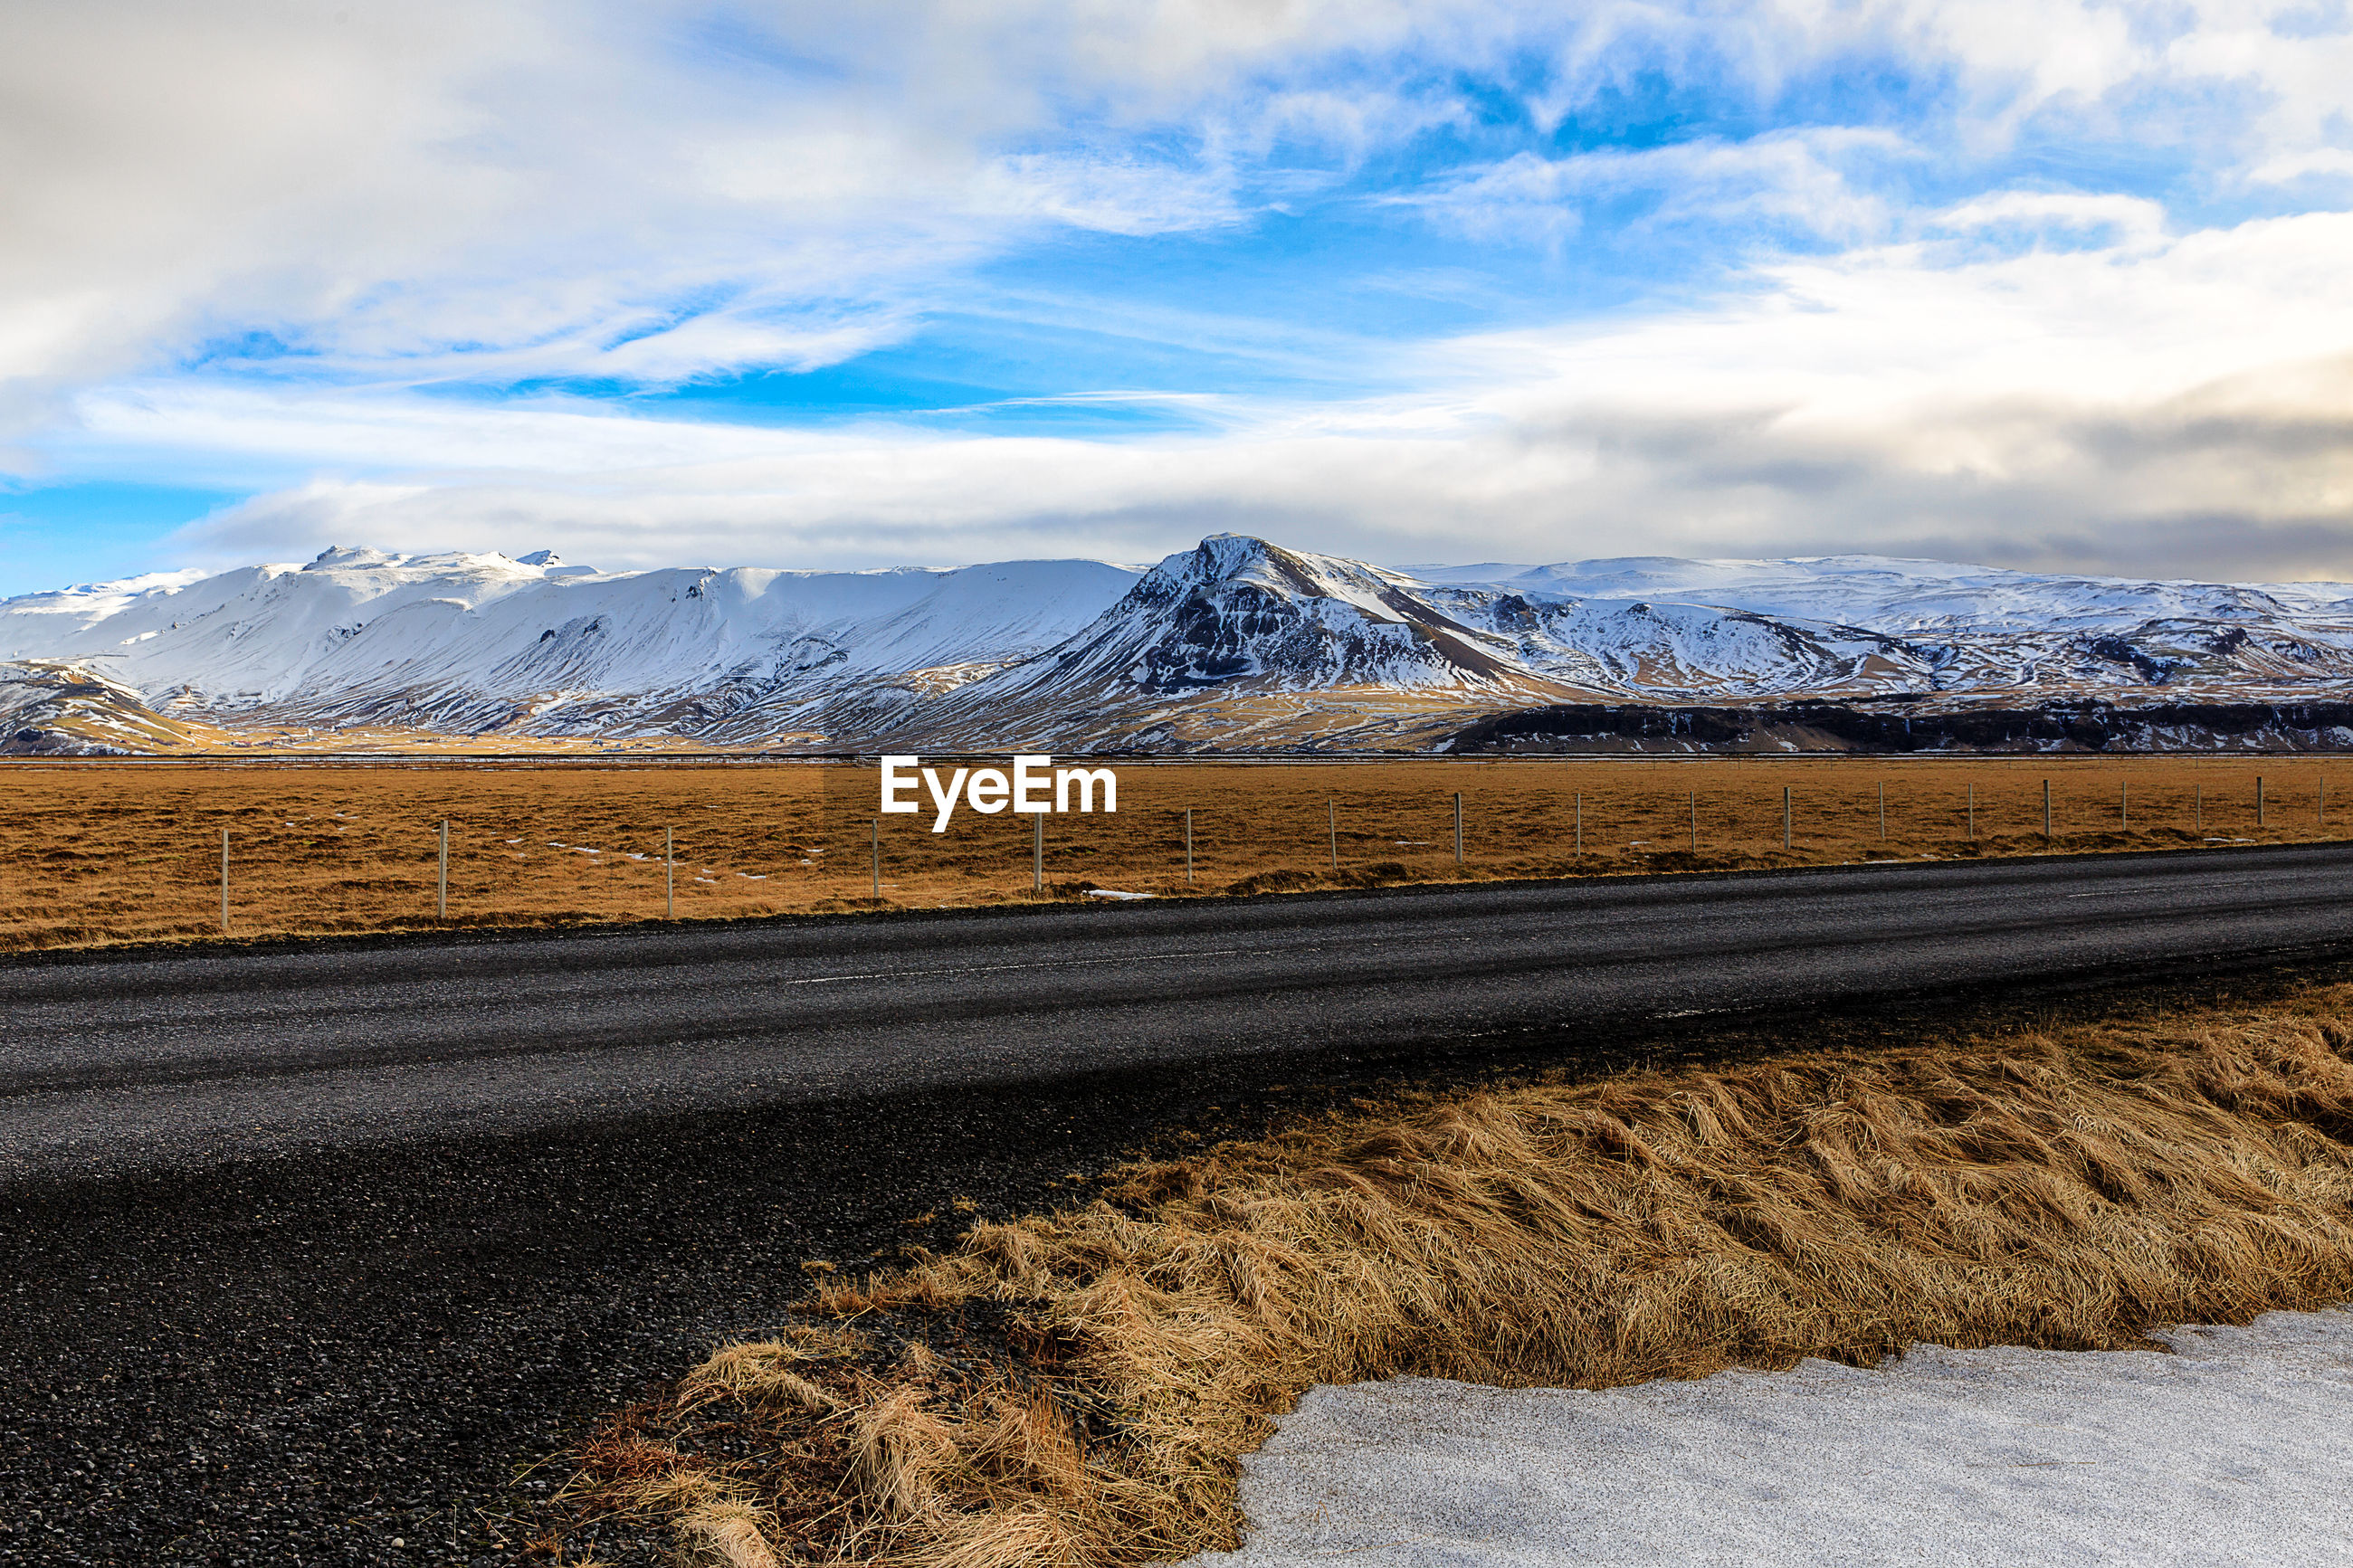 Road amidst field against snowcapped mountains